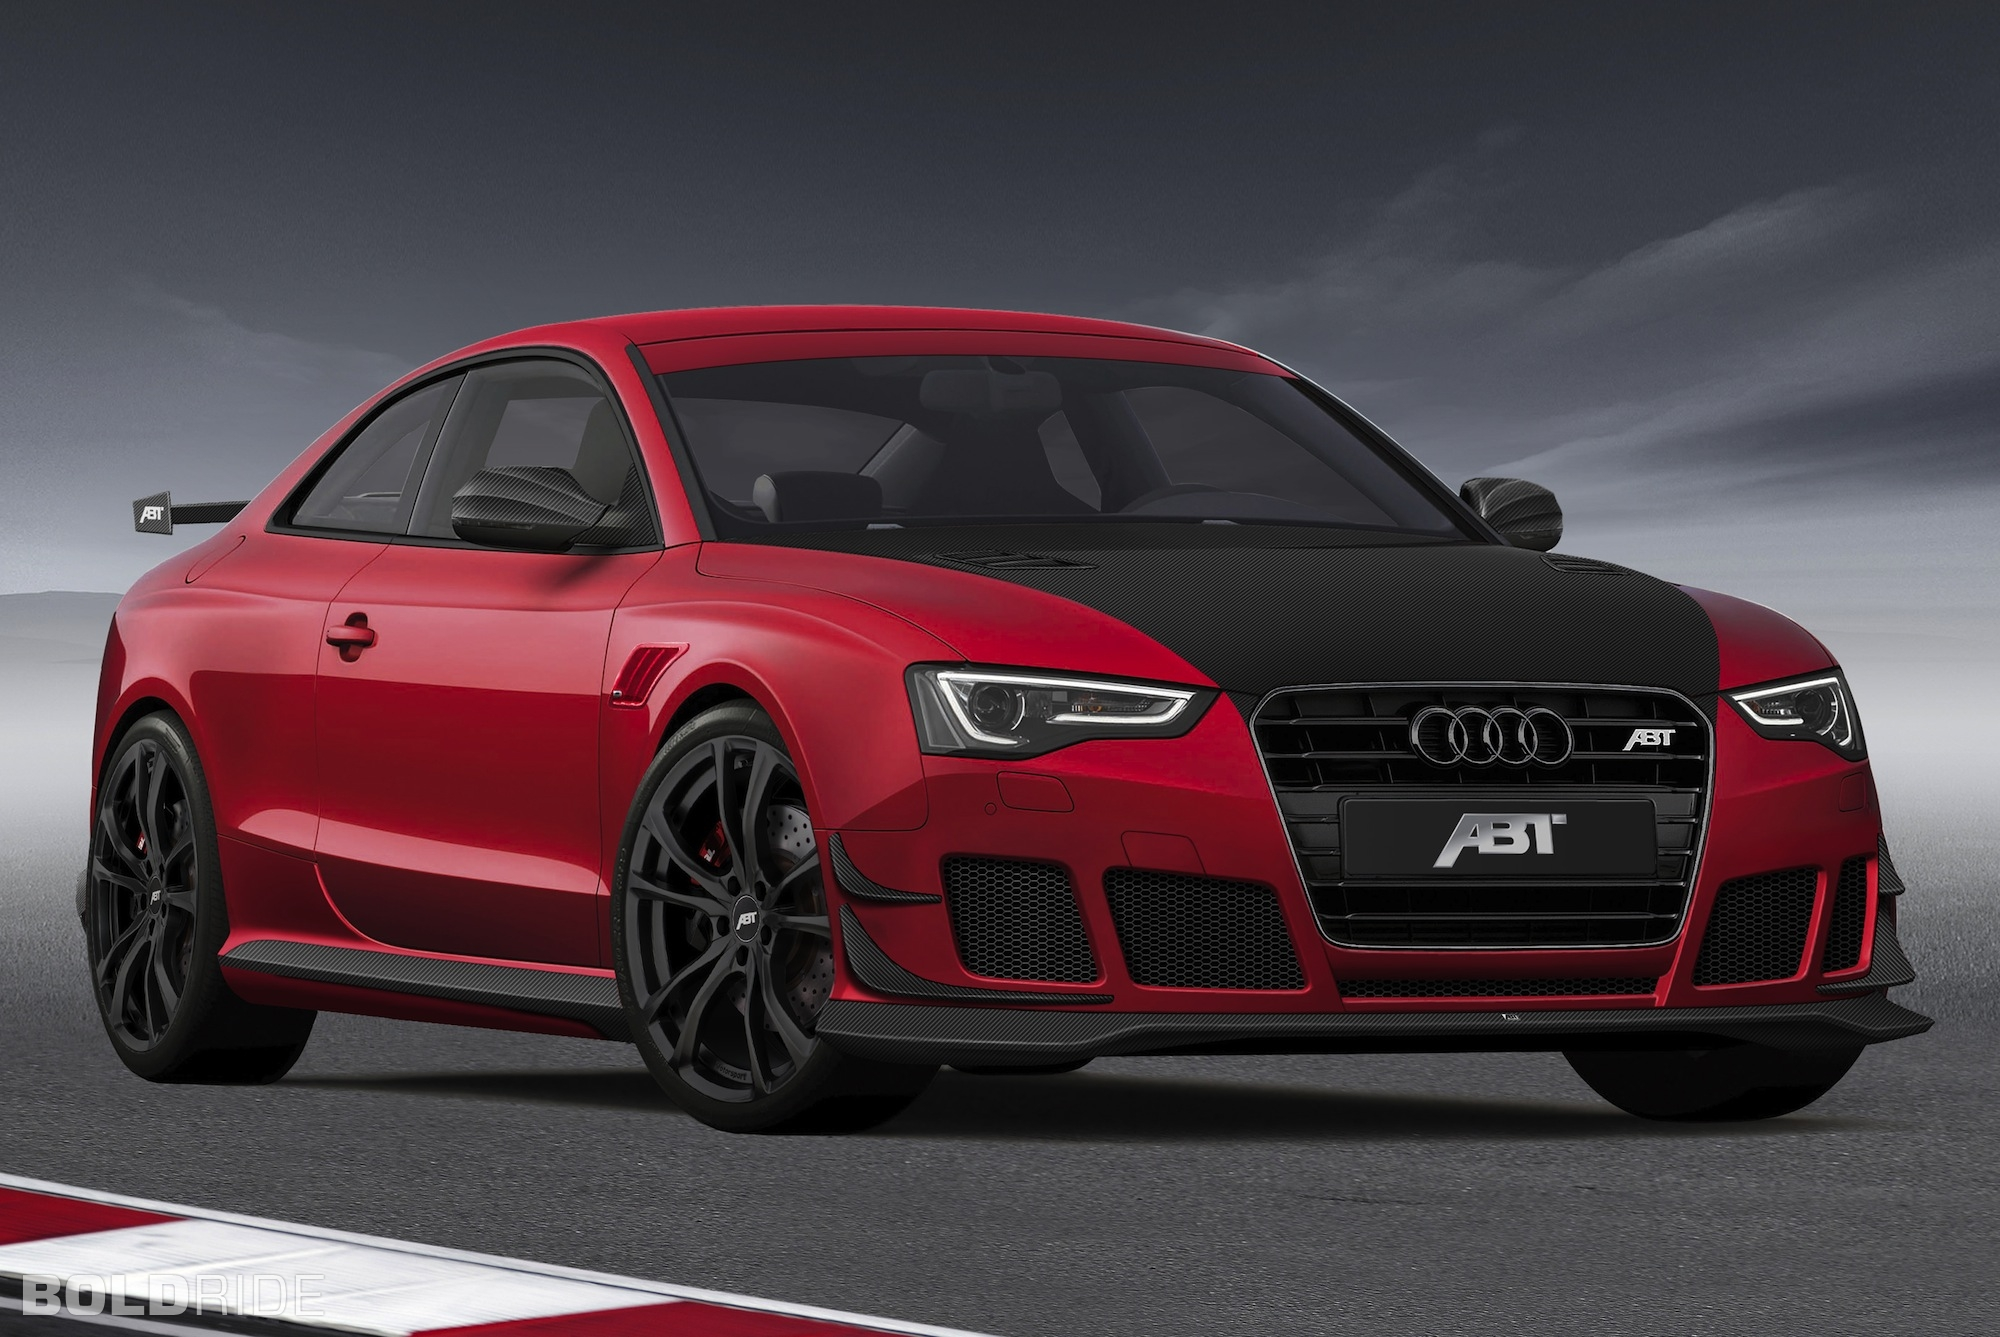 2013 abt audi rs5 r tuning 5 wallpaper 2000x1337 211426 wallpaperup. Black Bedroom Furniture Sets. Home Design Ideas